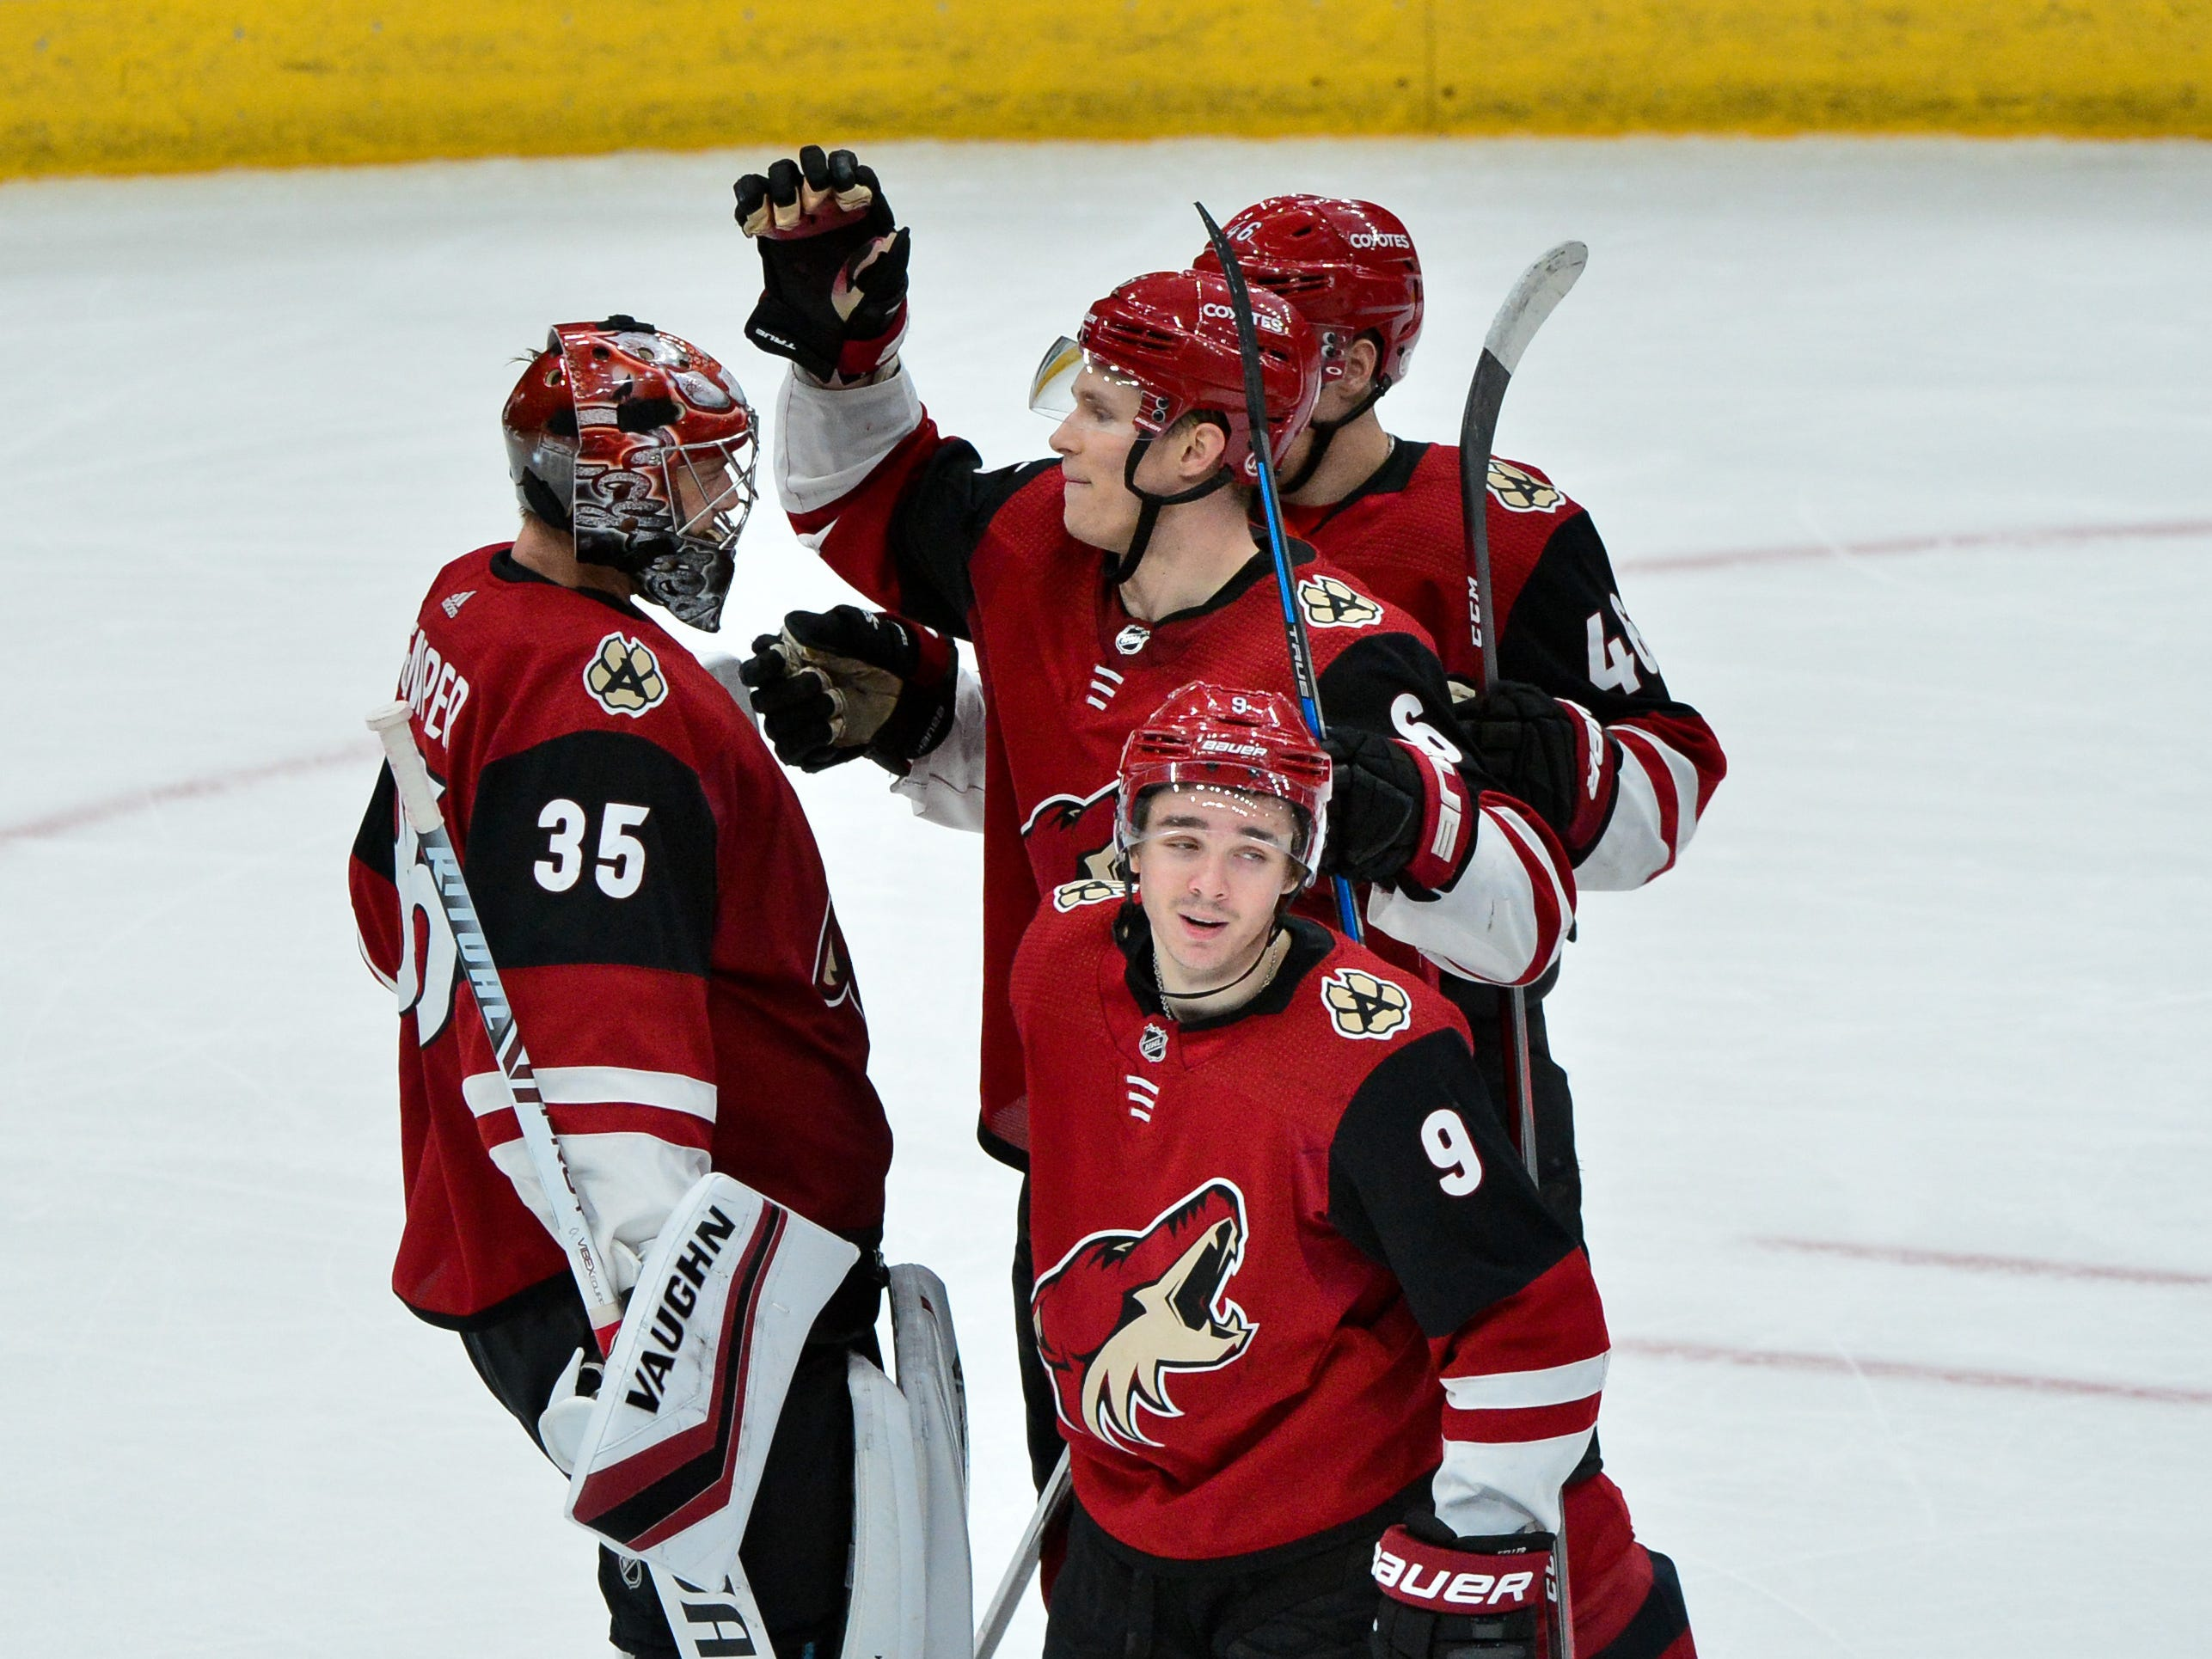 Feb 28, 2019; Glendale, AZ, USA; Arizona Coyotes goaltender Darcy Kuemper (35) celebrates with center Clayton Keller (9), defenseman Jakob Chychrun (6) and defenseman Ilya Lyubushkin (46) after defeating the Vancouver Canucks at Gila River Arena.